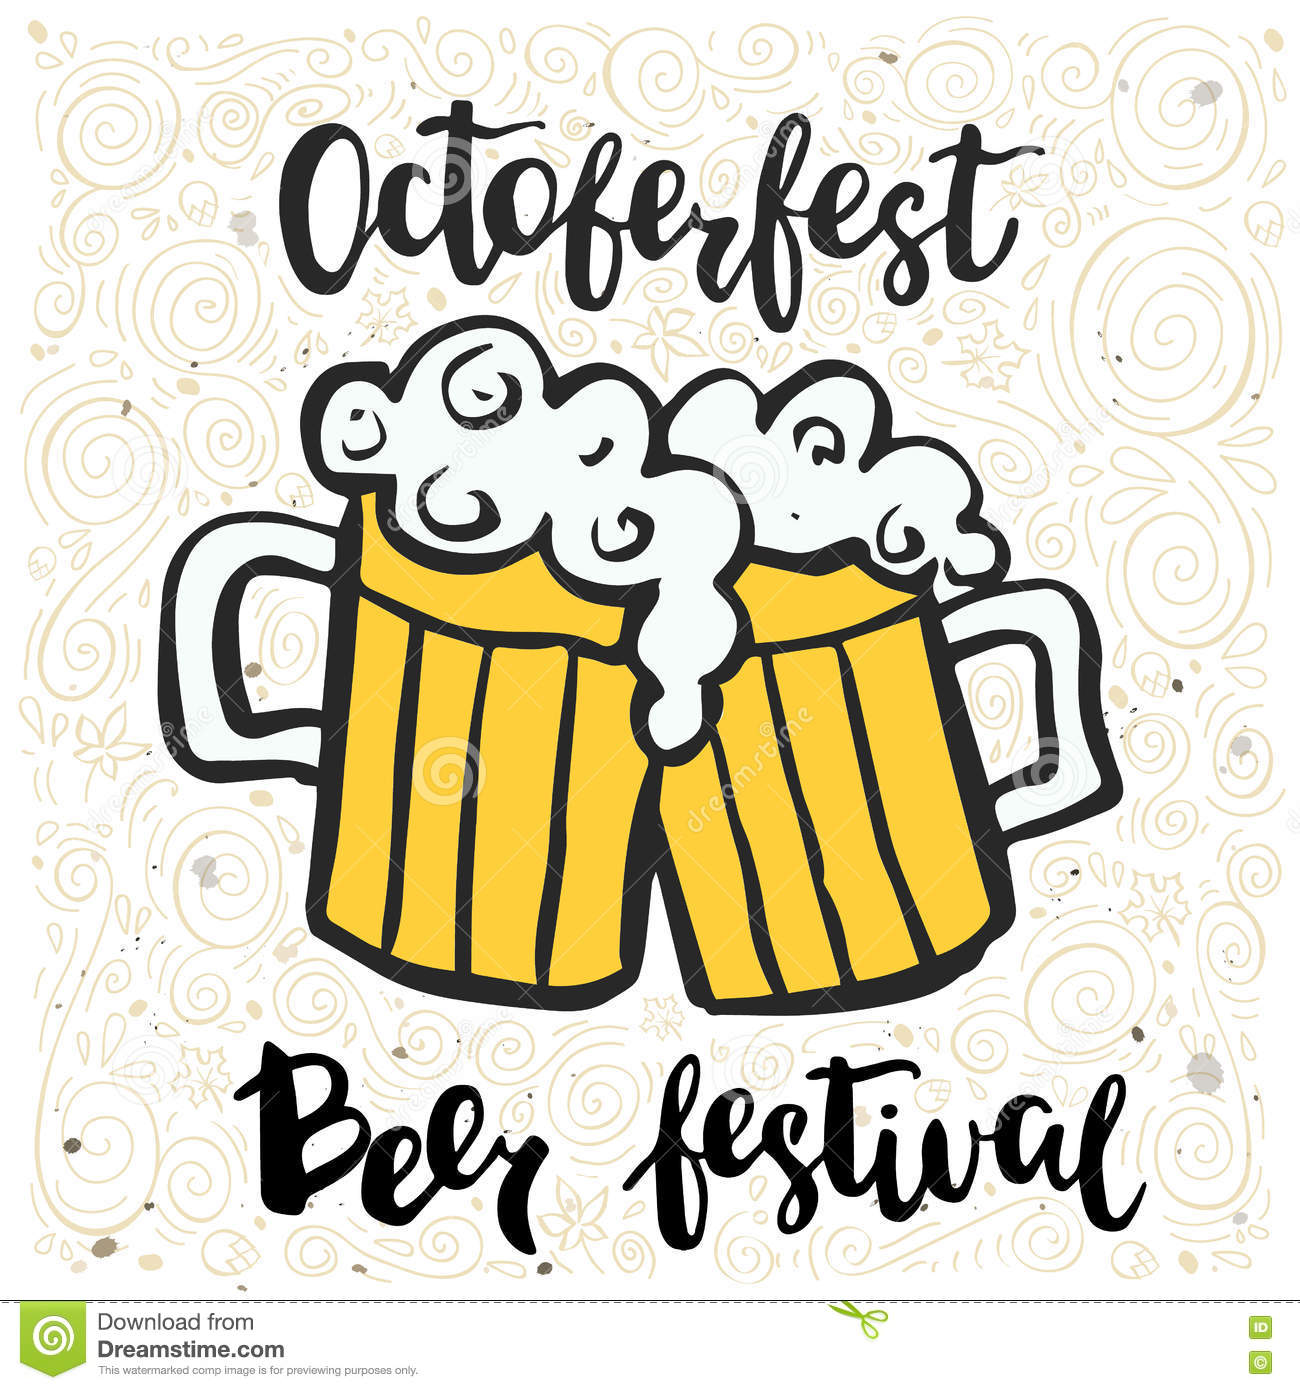 Vector illustration with two beer mugs and an inscription Octoberfest festival.